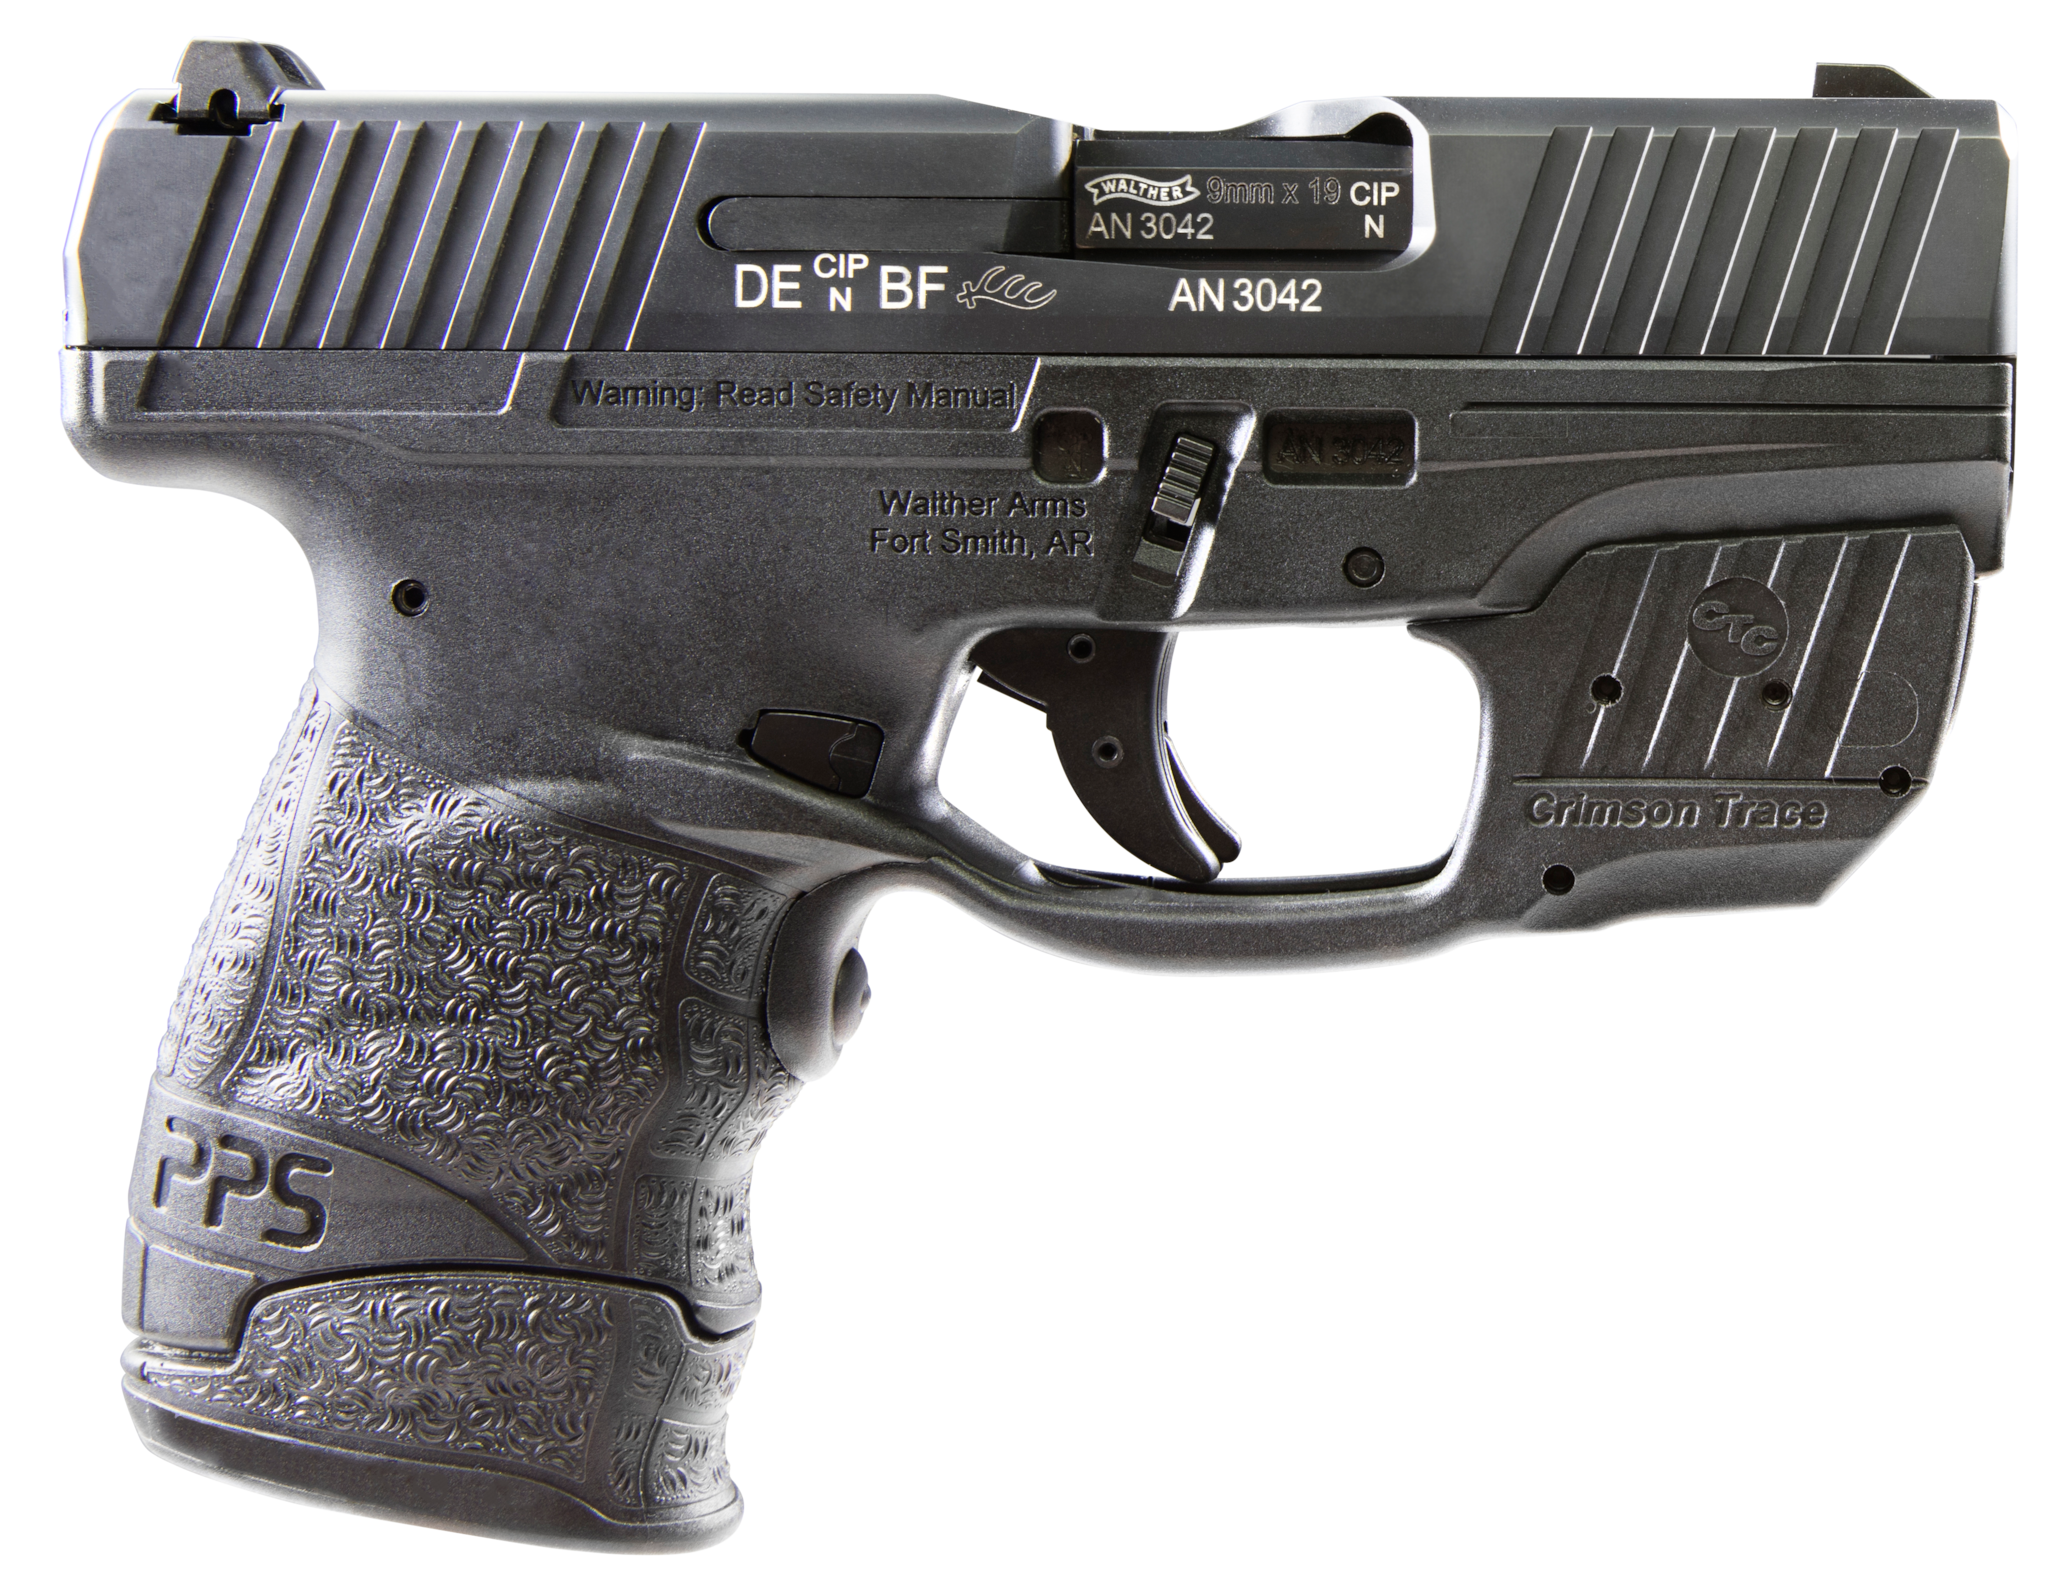 Walther pps - walther pps - qwe.wiki